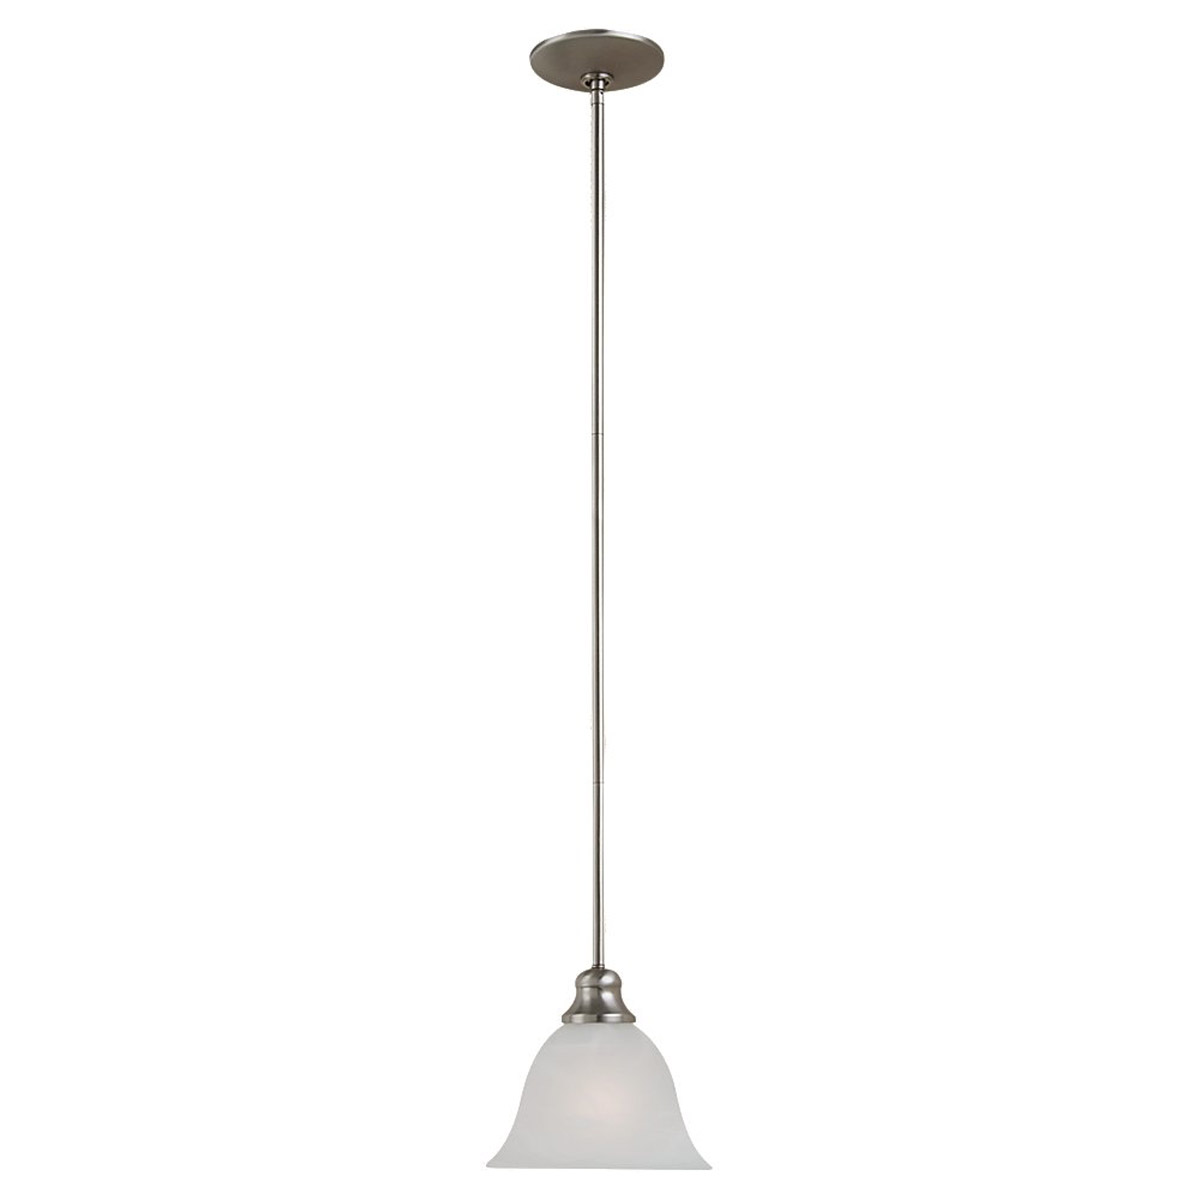 Sea Gull 61940BLE-962 Windgate 1 Light 7 inch Brushed Nickel Mini Pendant Ceiling Light in Fluorescent photo